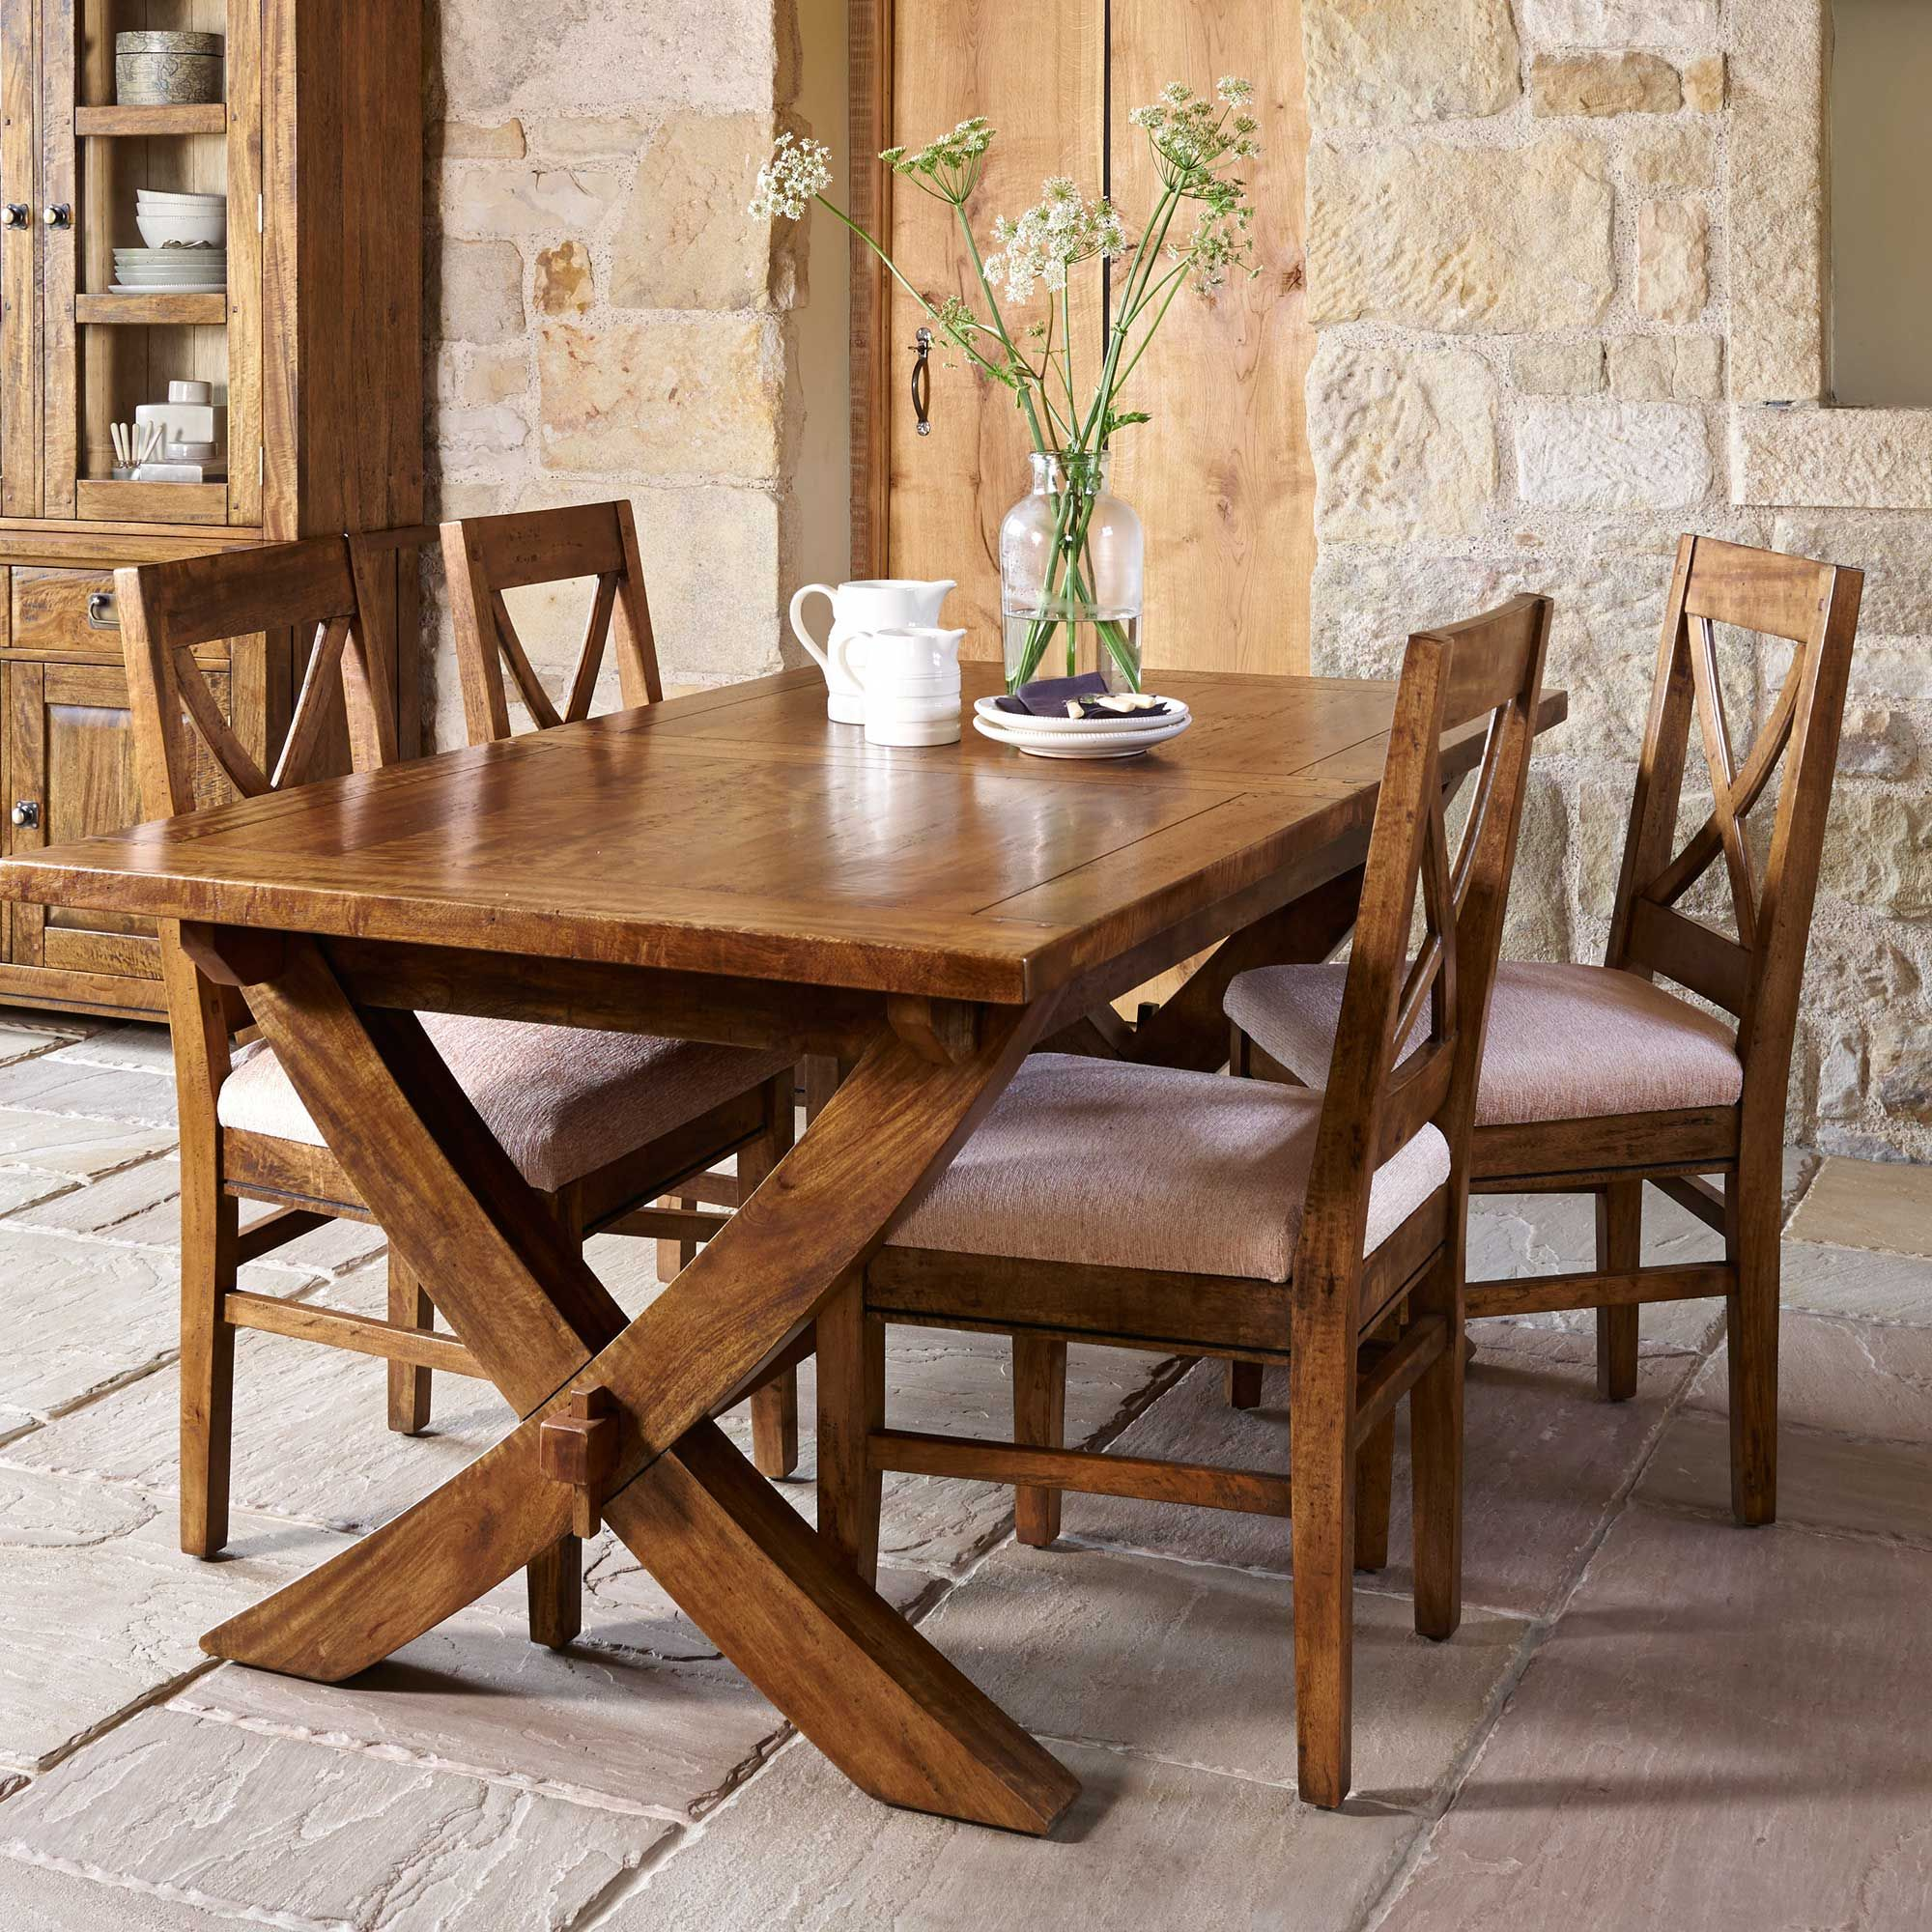 The Rustic New Frontier Dining Range Is Made From Mango Wood Which Gives Pieces A